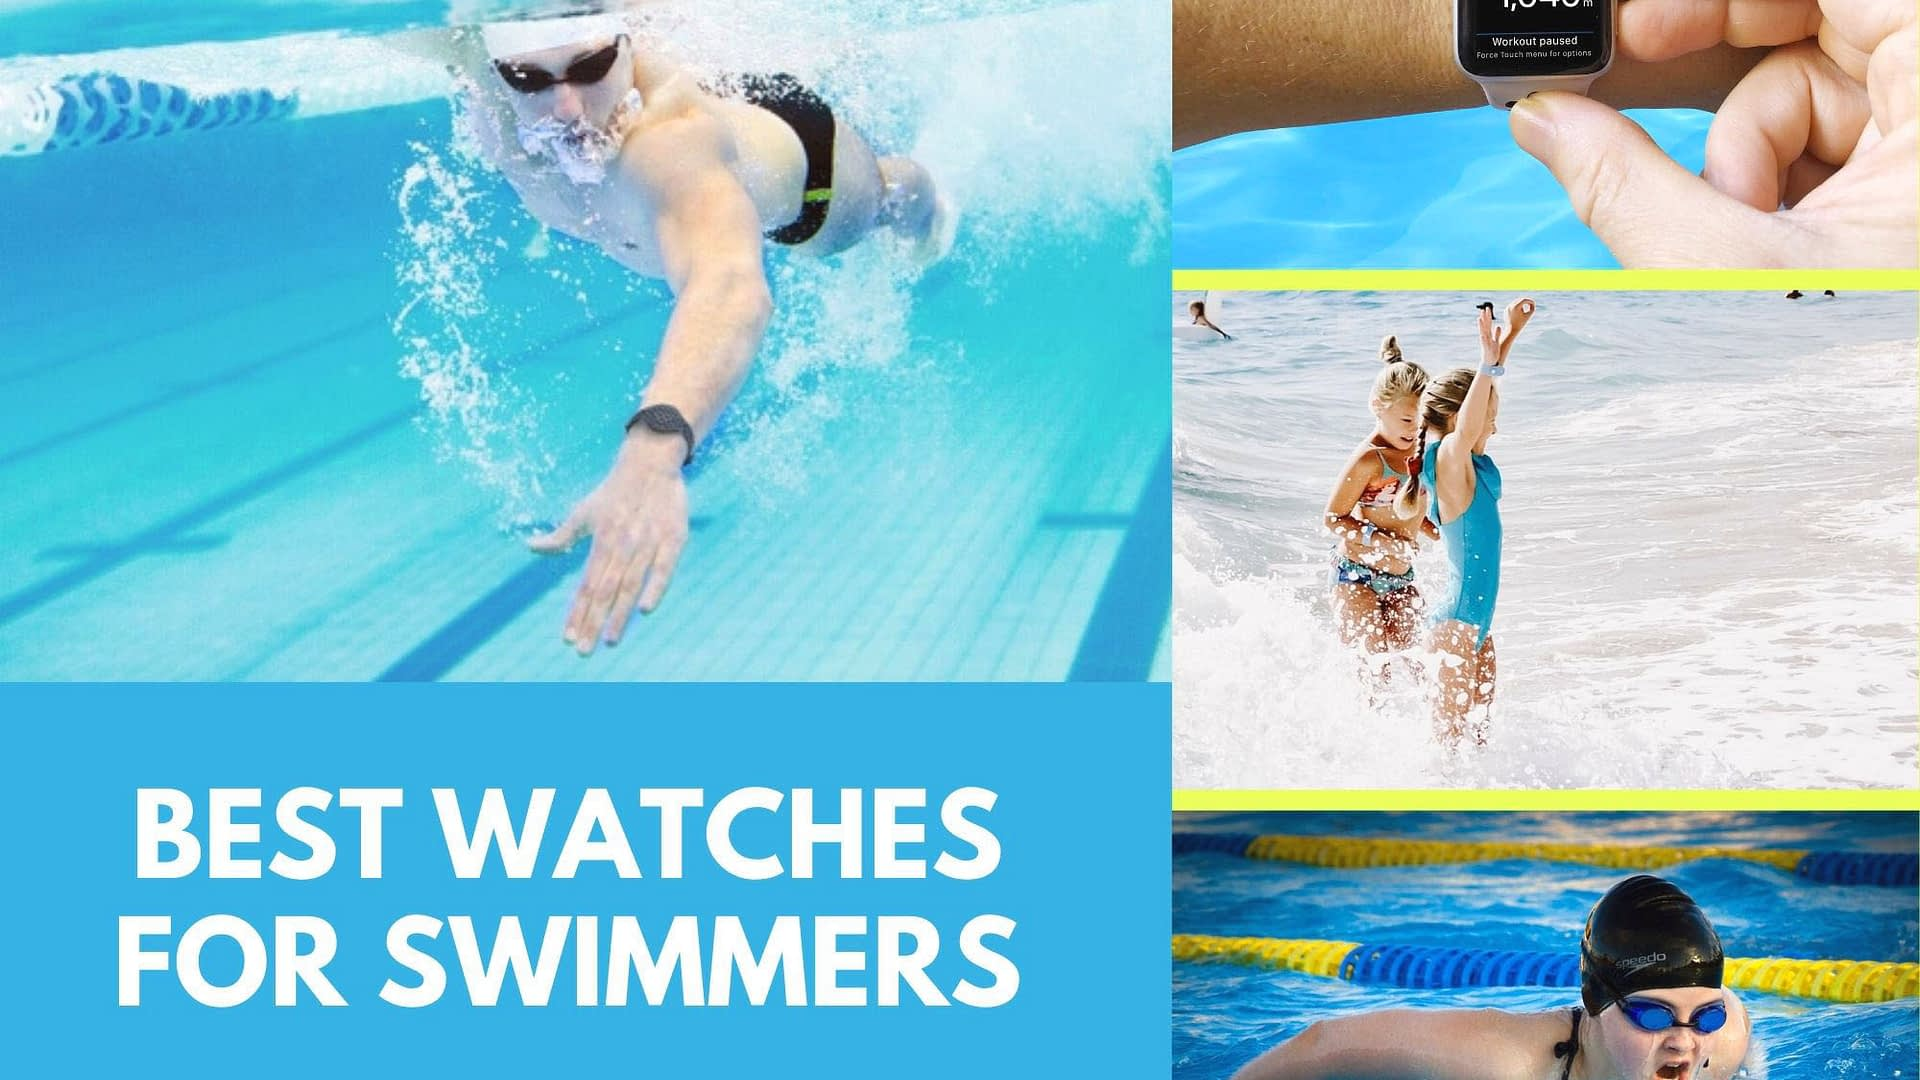 Best Watches For Swimmers